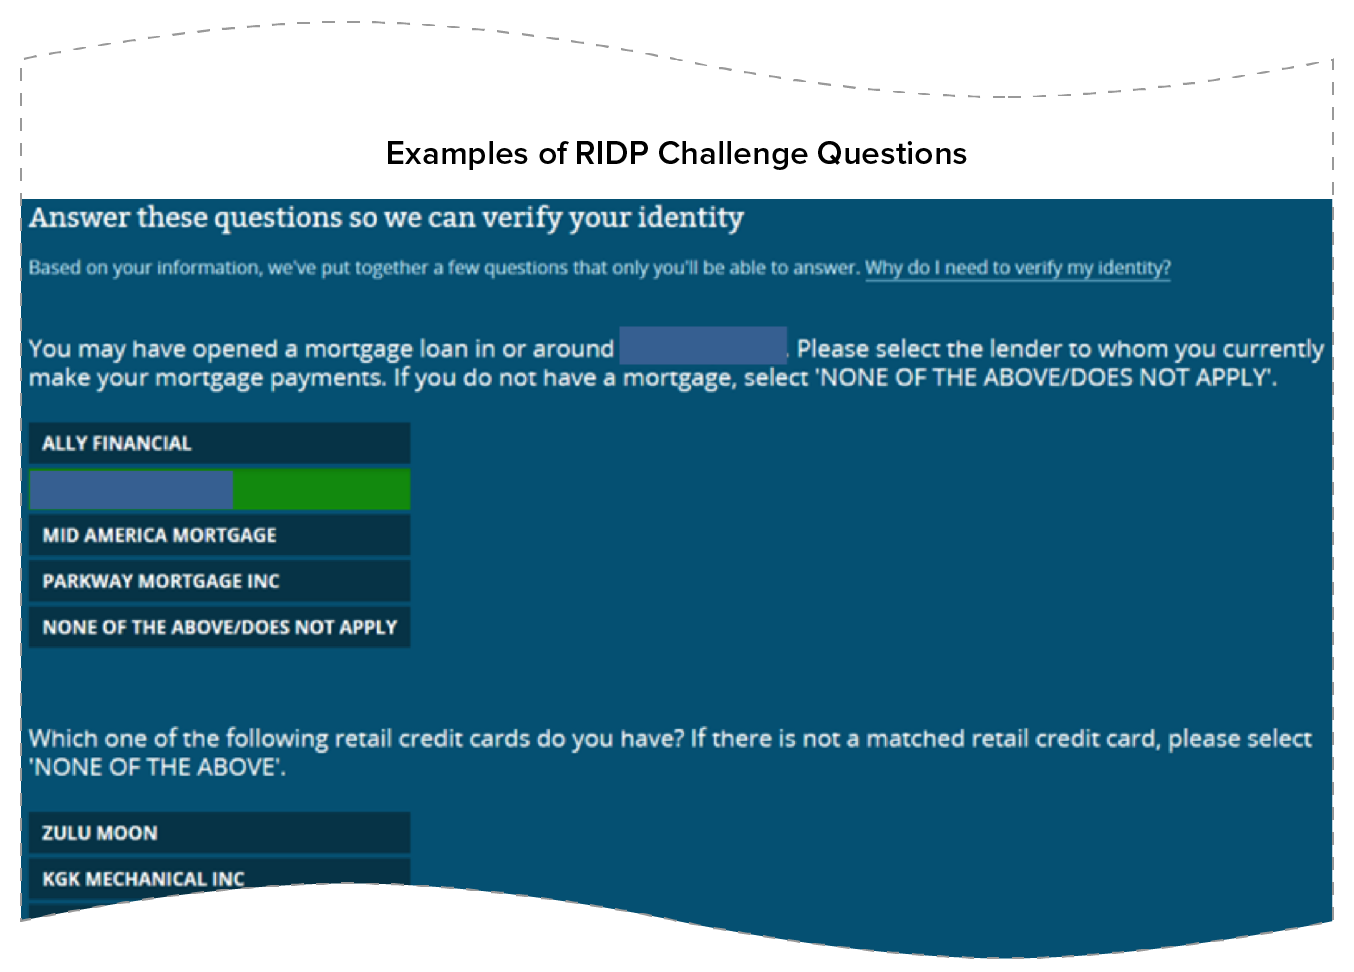 Examples of RIDP Challenge Questions